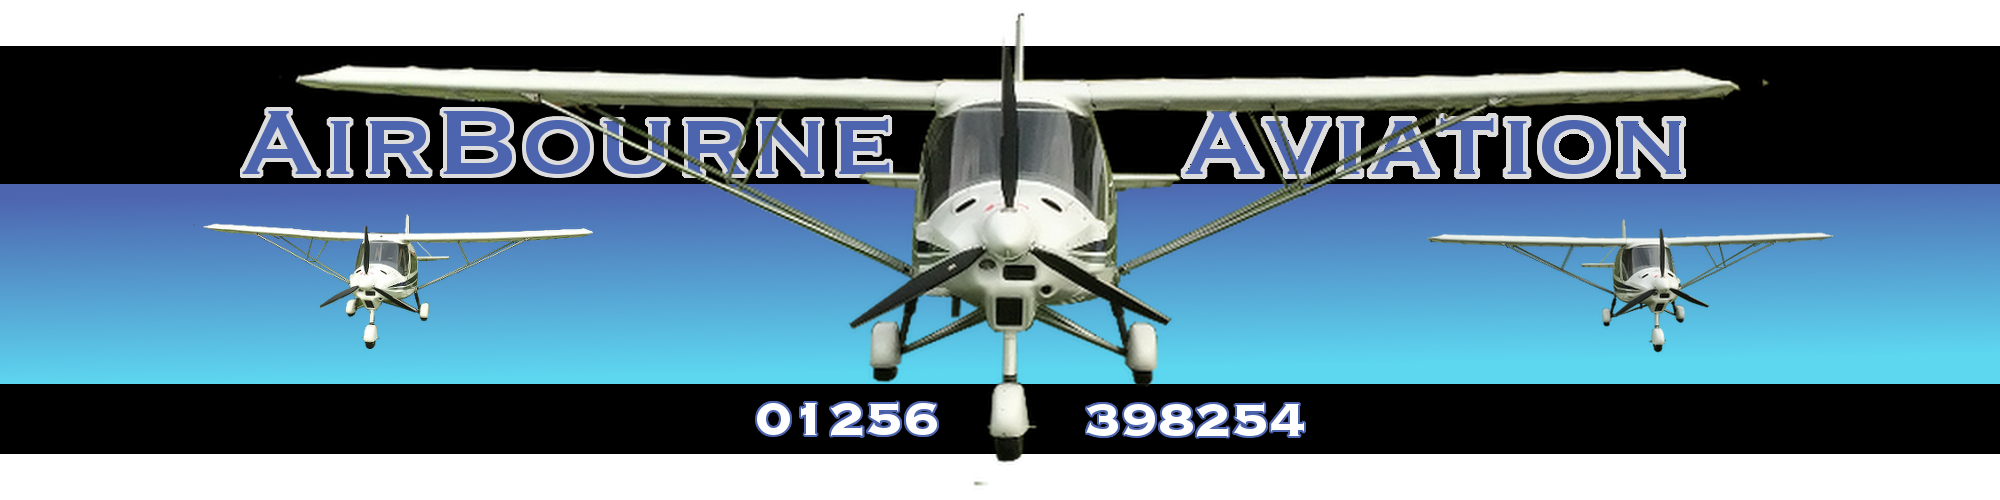 Airbourne Aviation Flying School at Popham Airfield in Hampshire